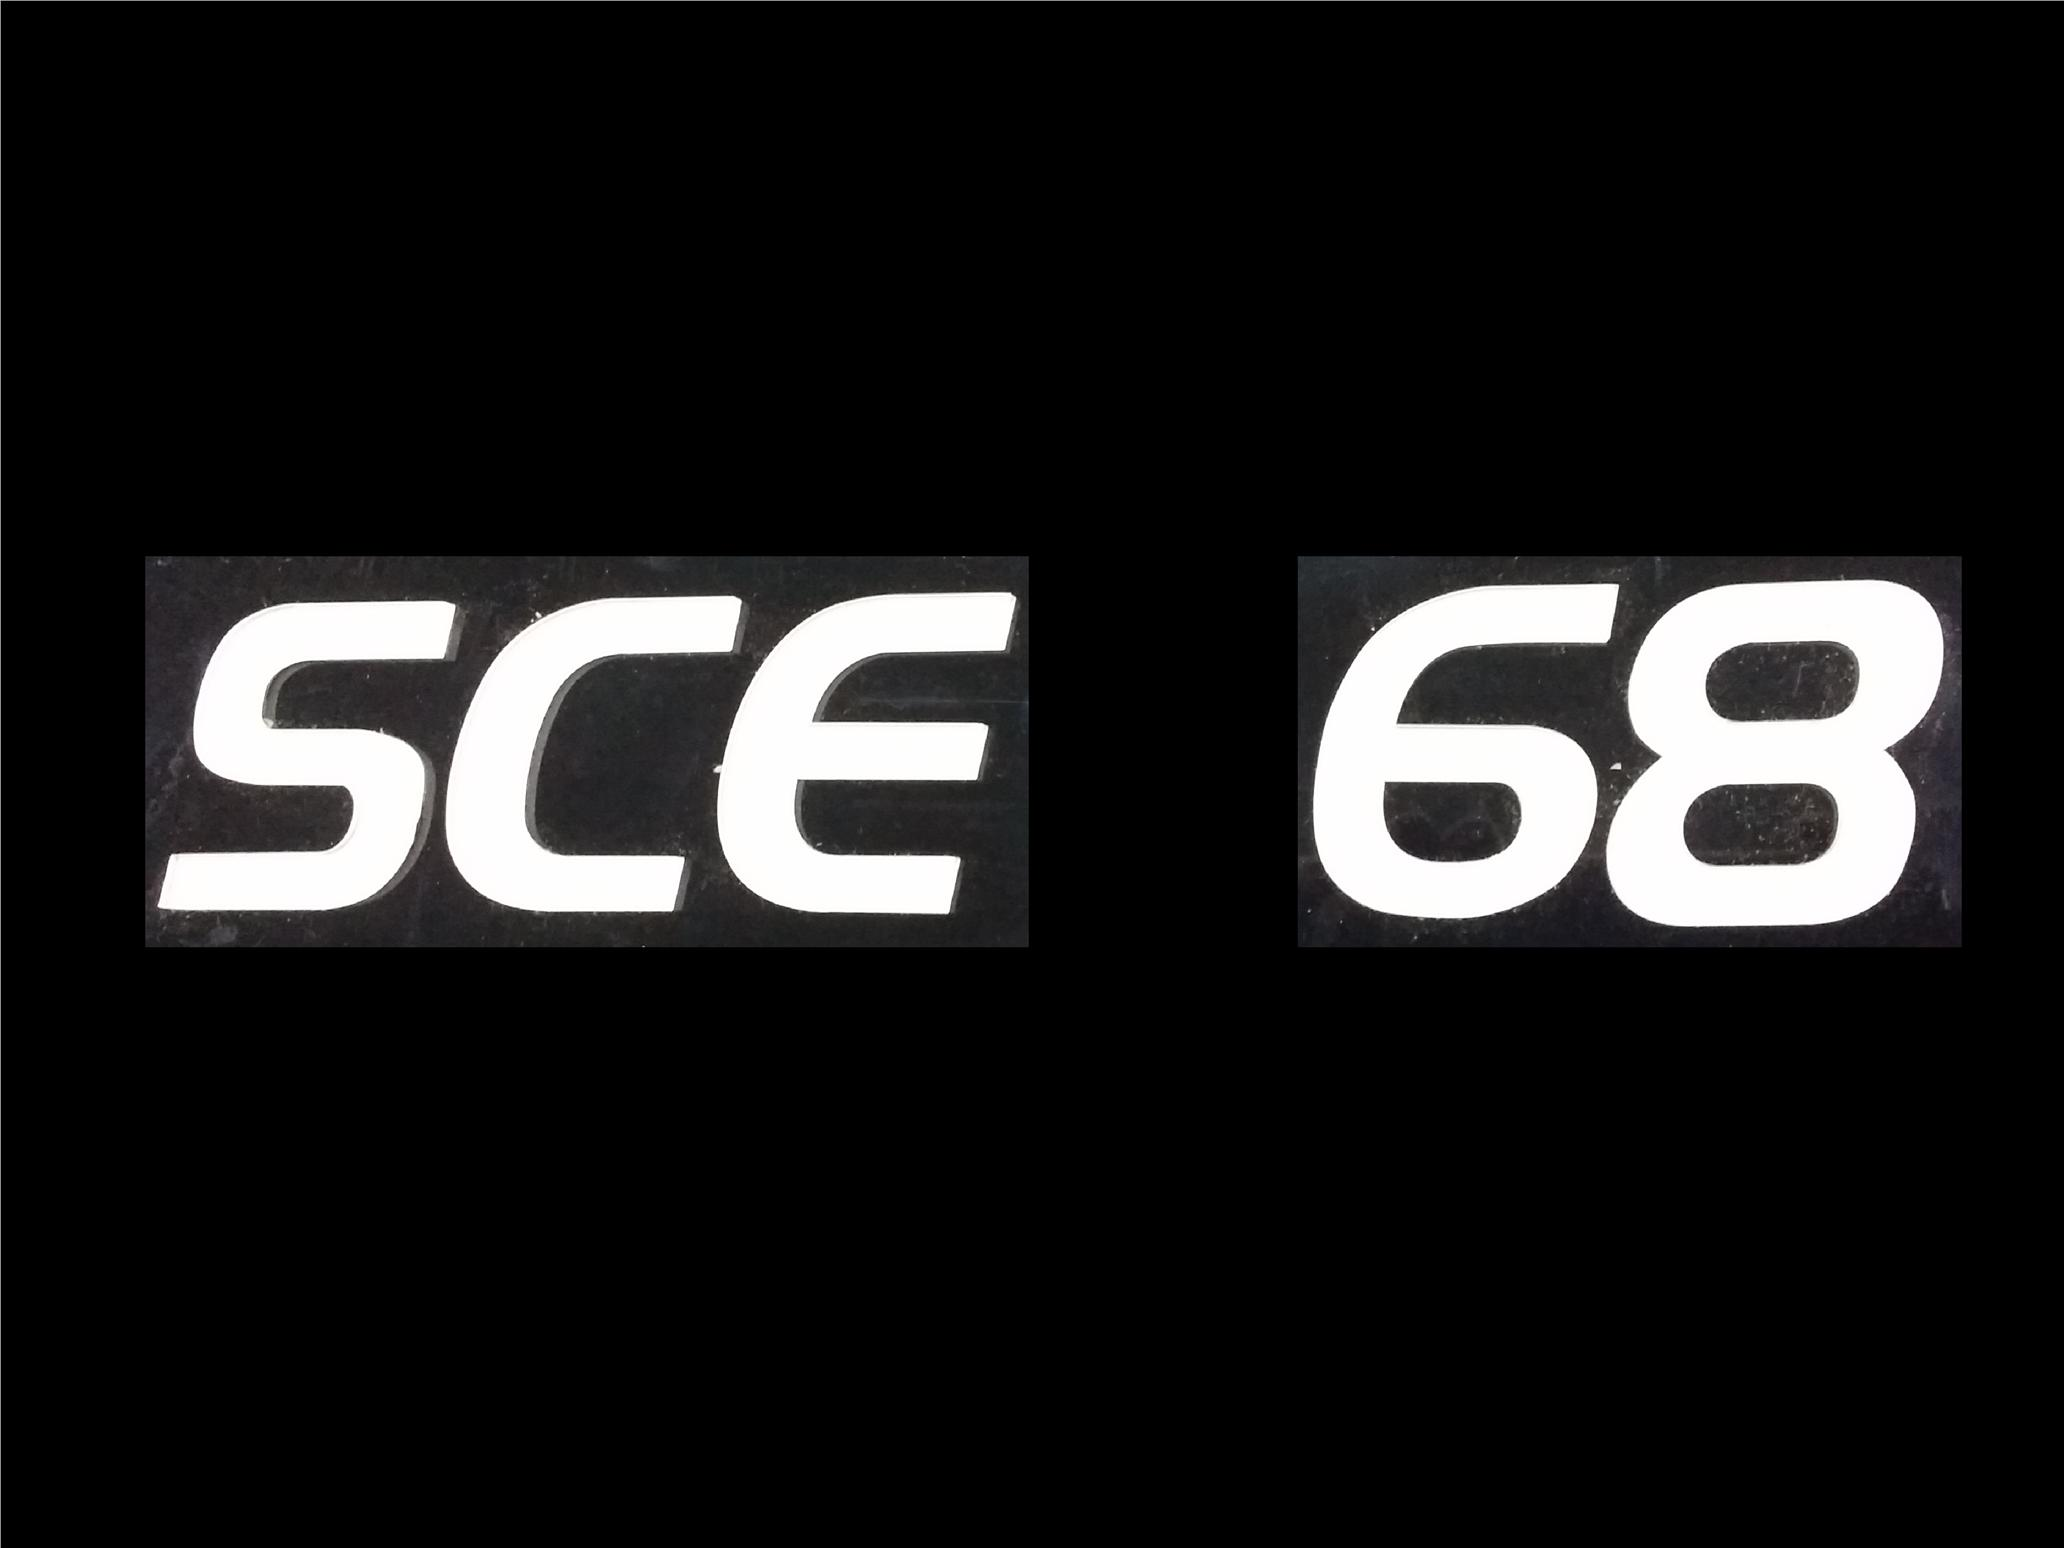 SCE FONT CRYSTAL ACRYLIC CAR NUMBER PLATE SET 2 - 7 ALPHABET